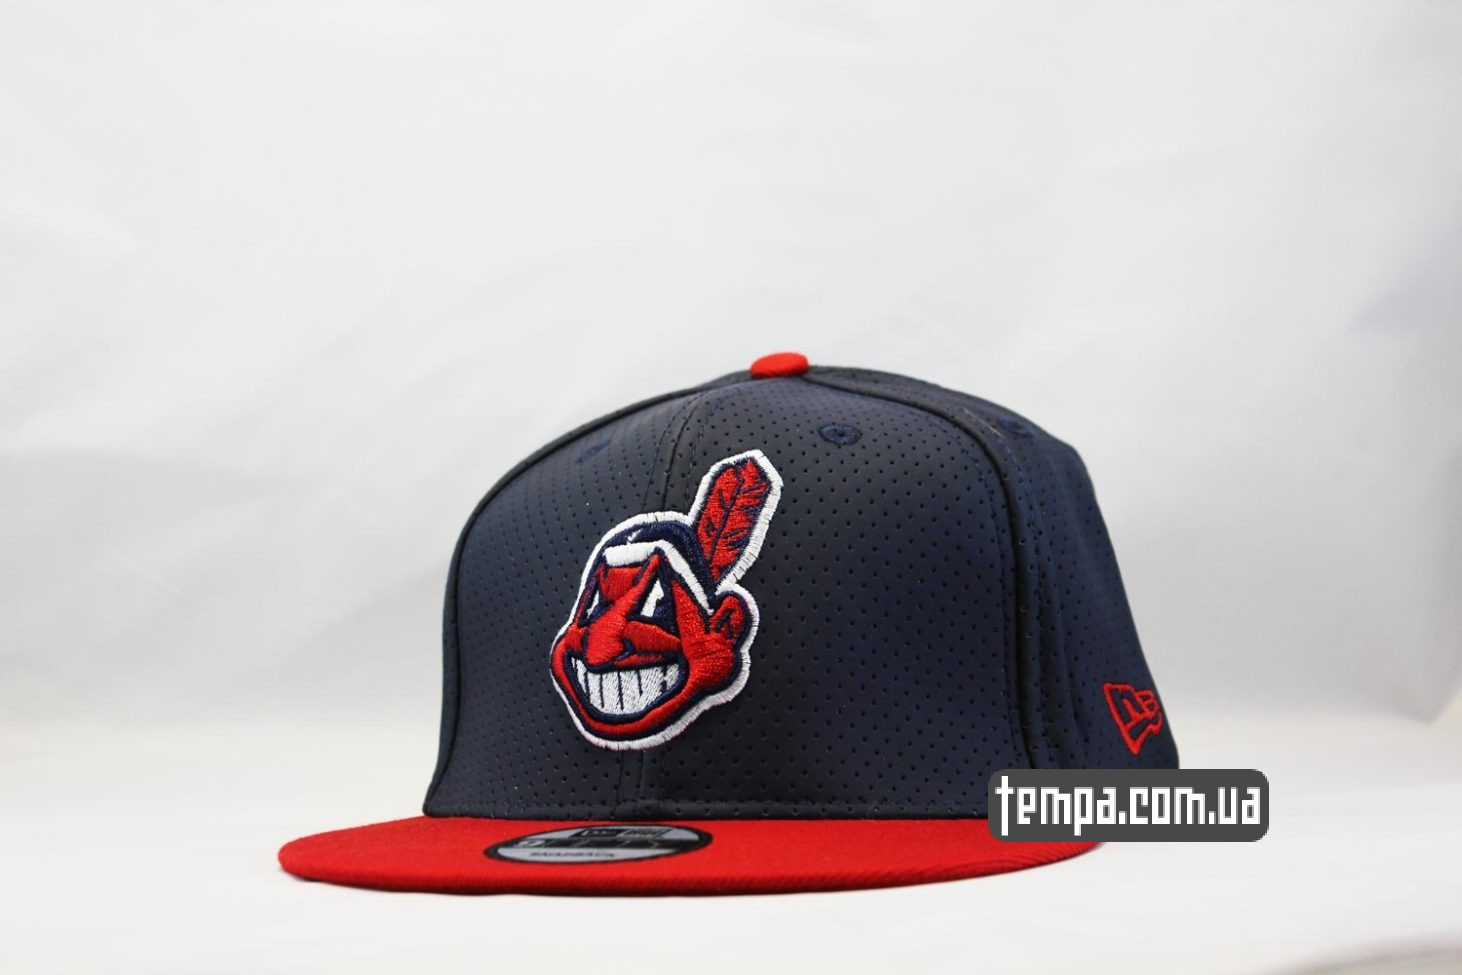 кепка snapback Cleveland Indians New Era trucker с сеточкой